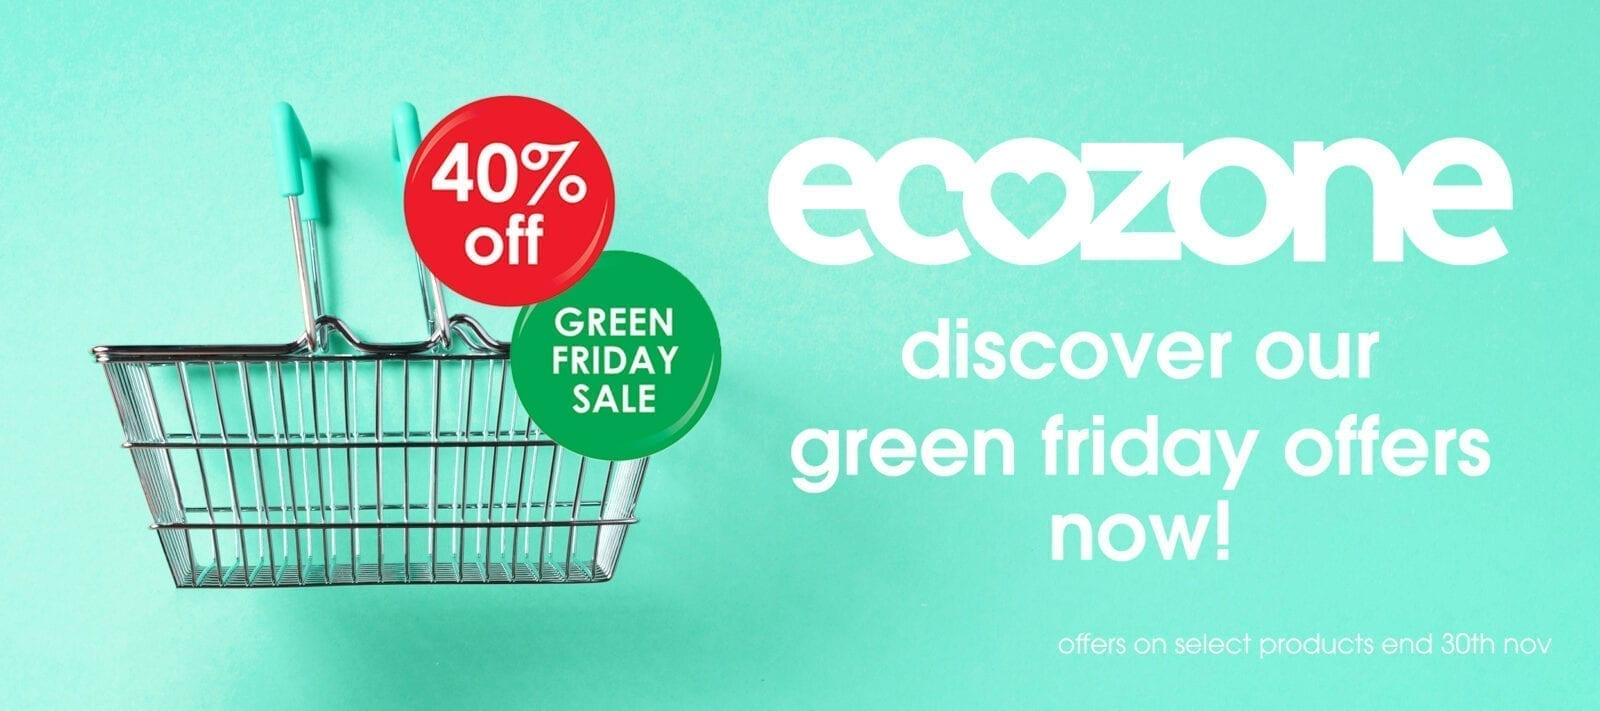 OFFICIAL home of Ecozone